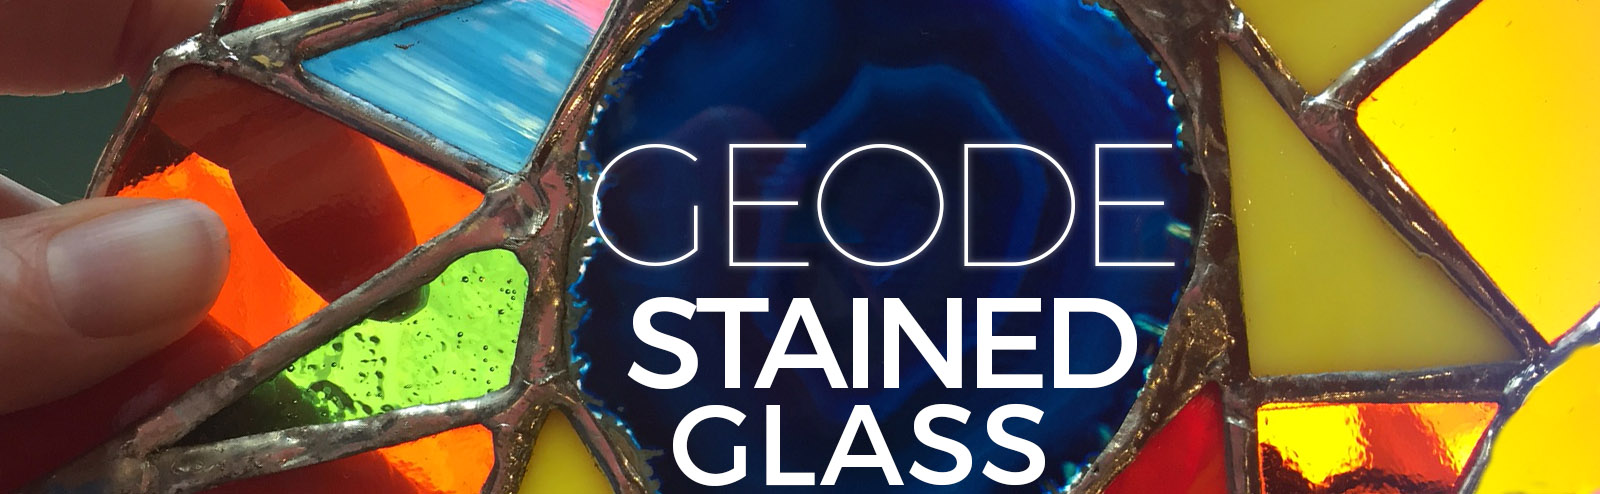 October 27 - Geode Stained Glass